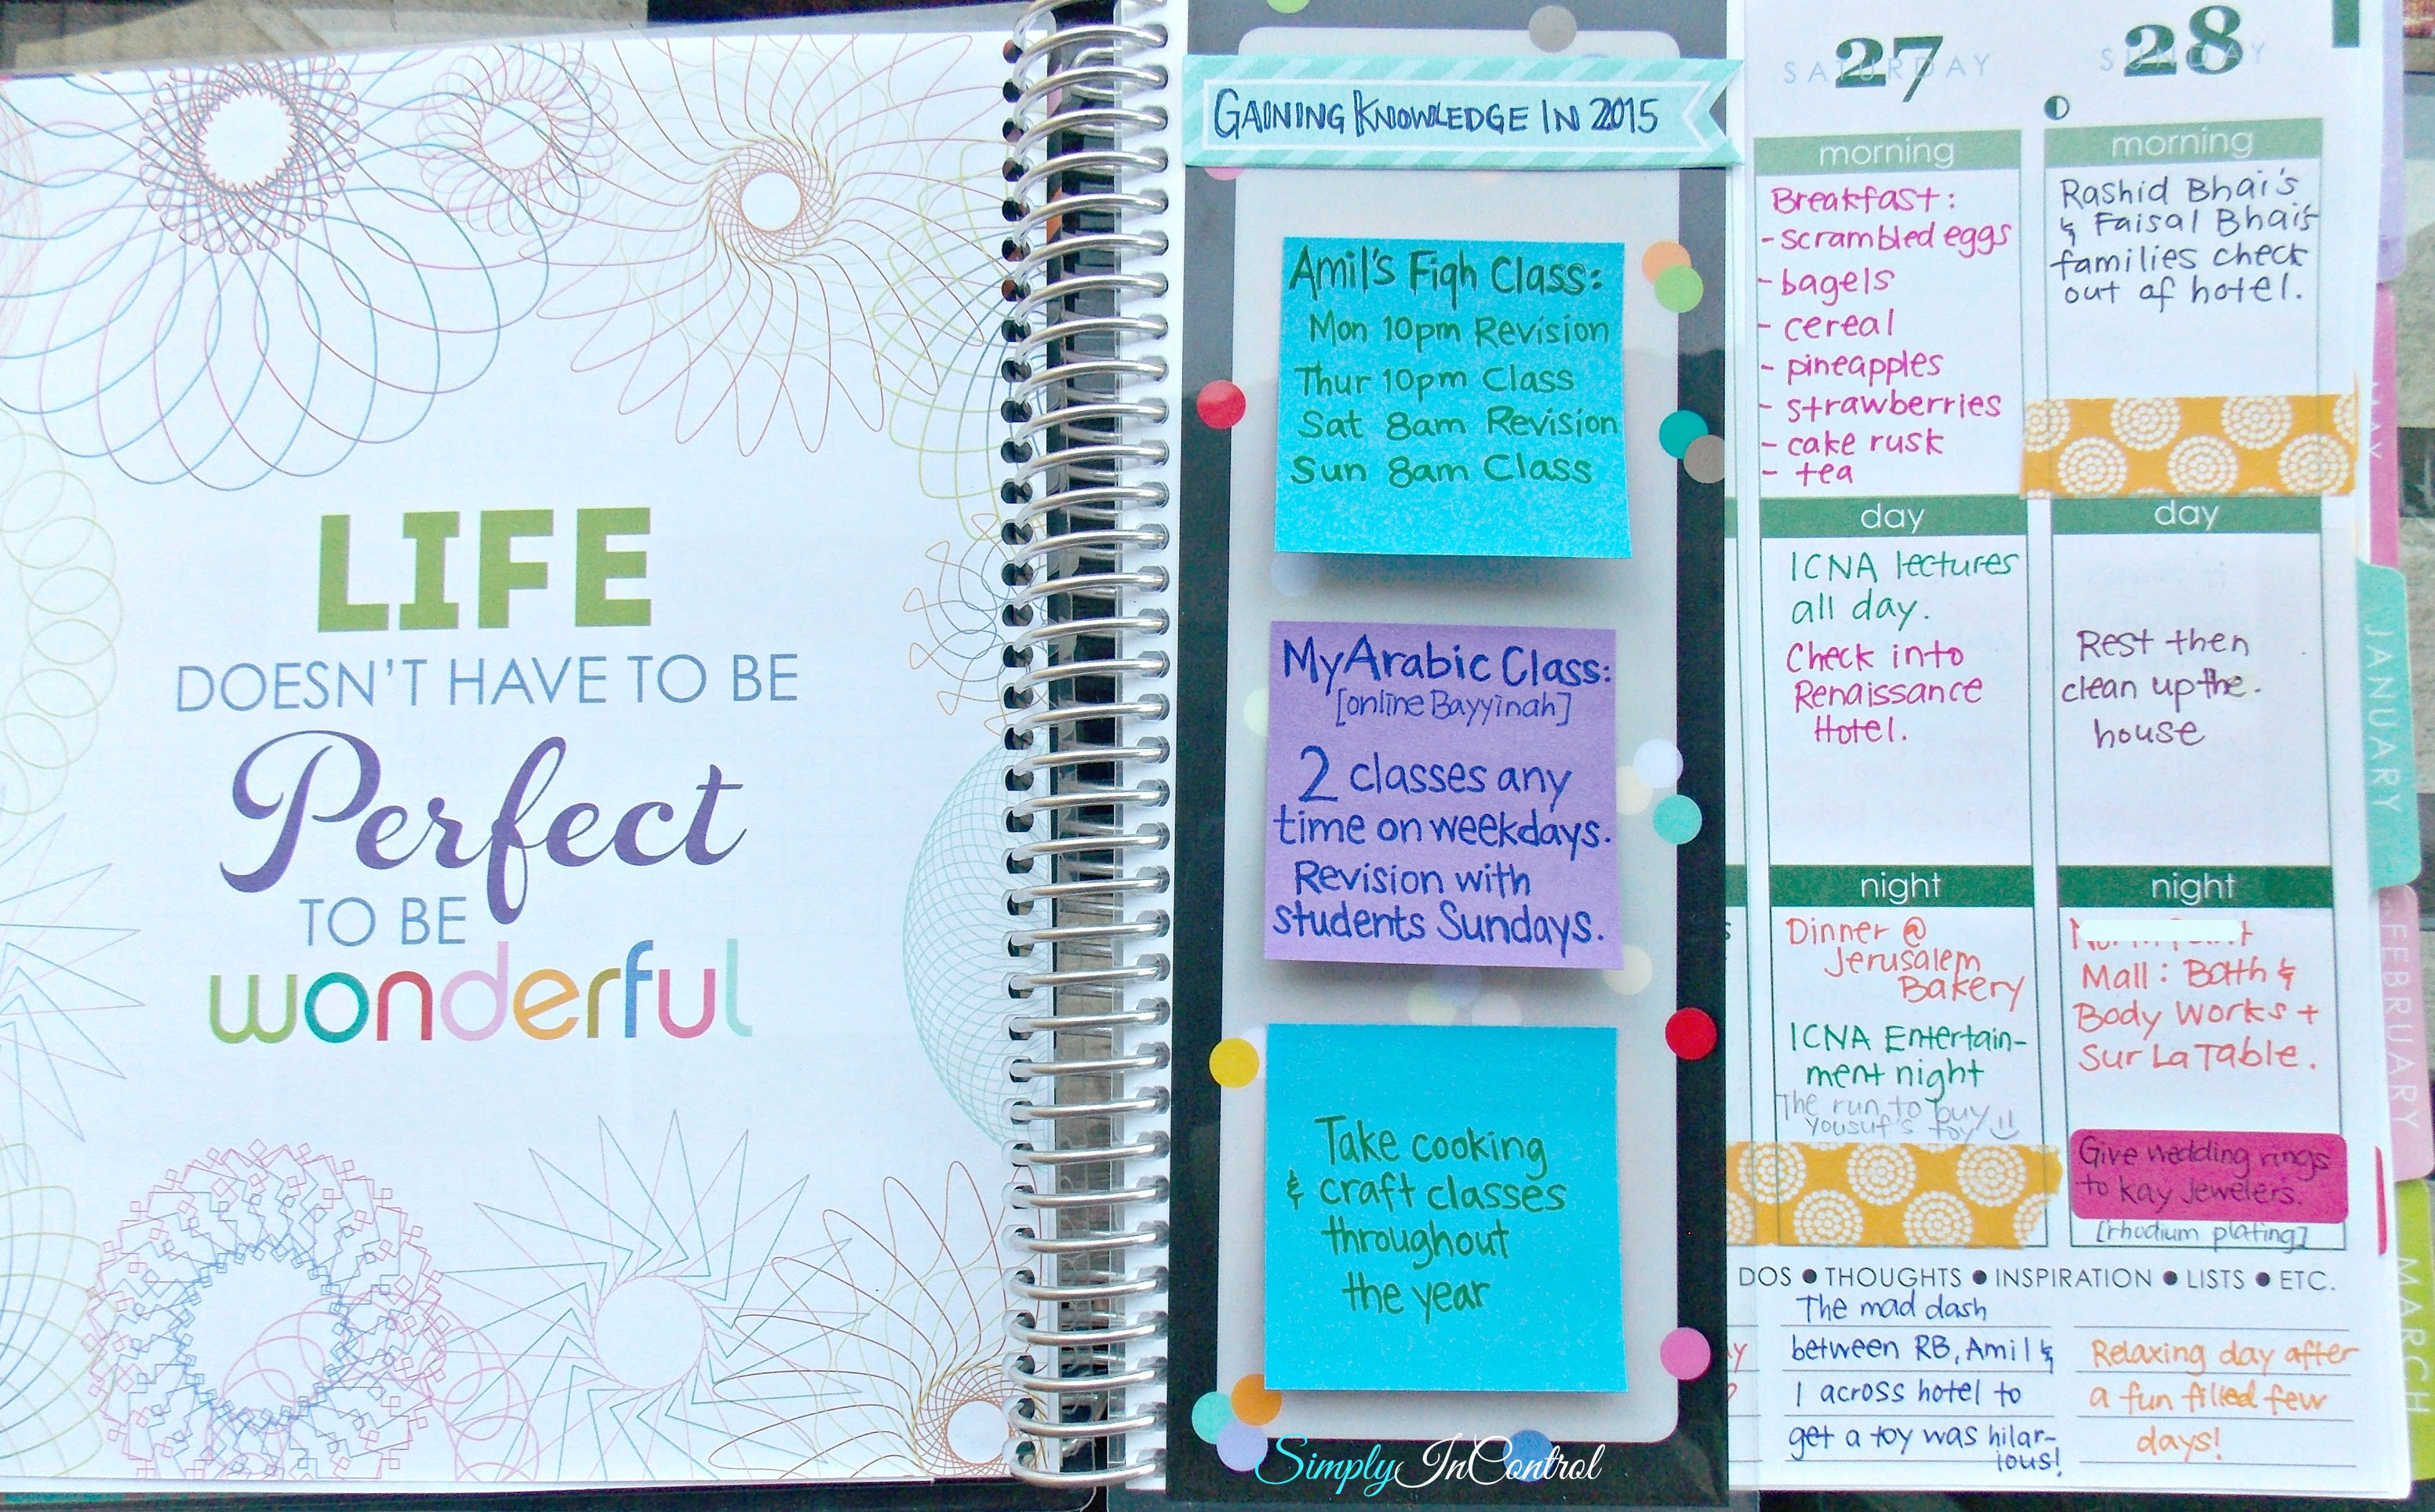 Daily Planner Inspirational Quotes